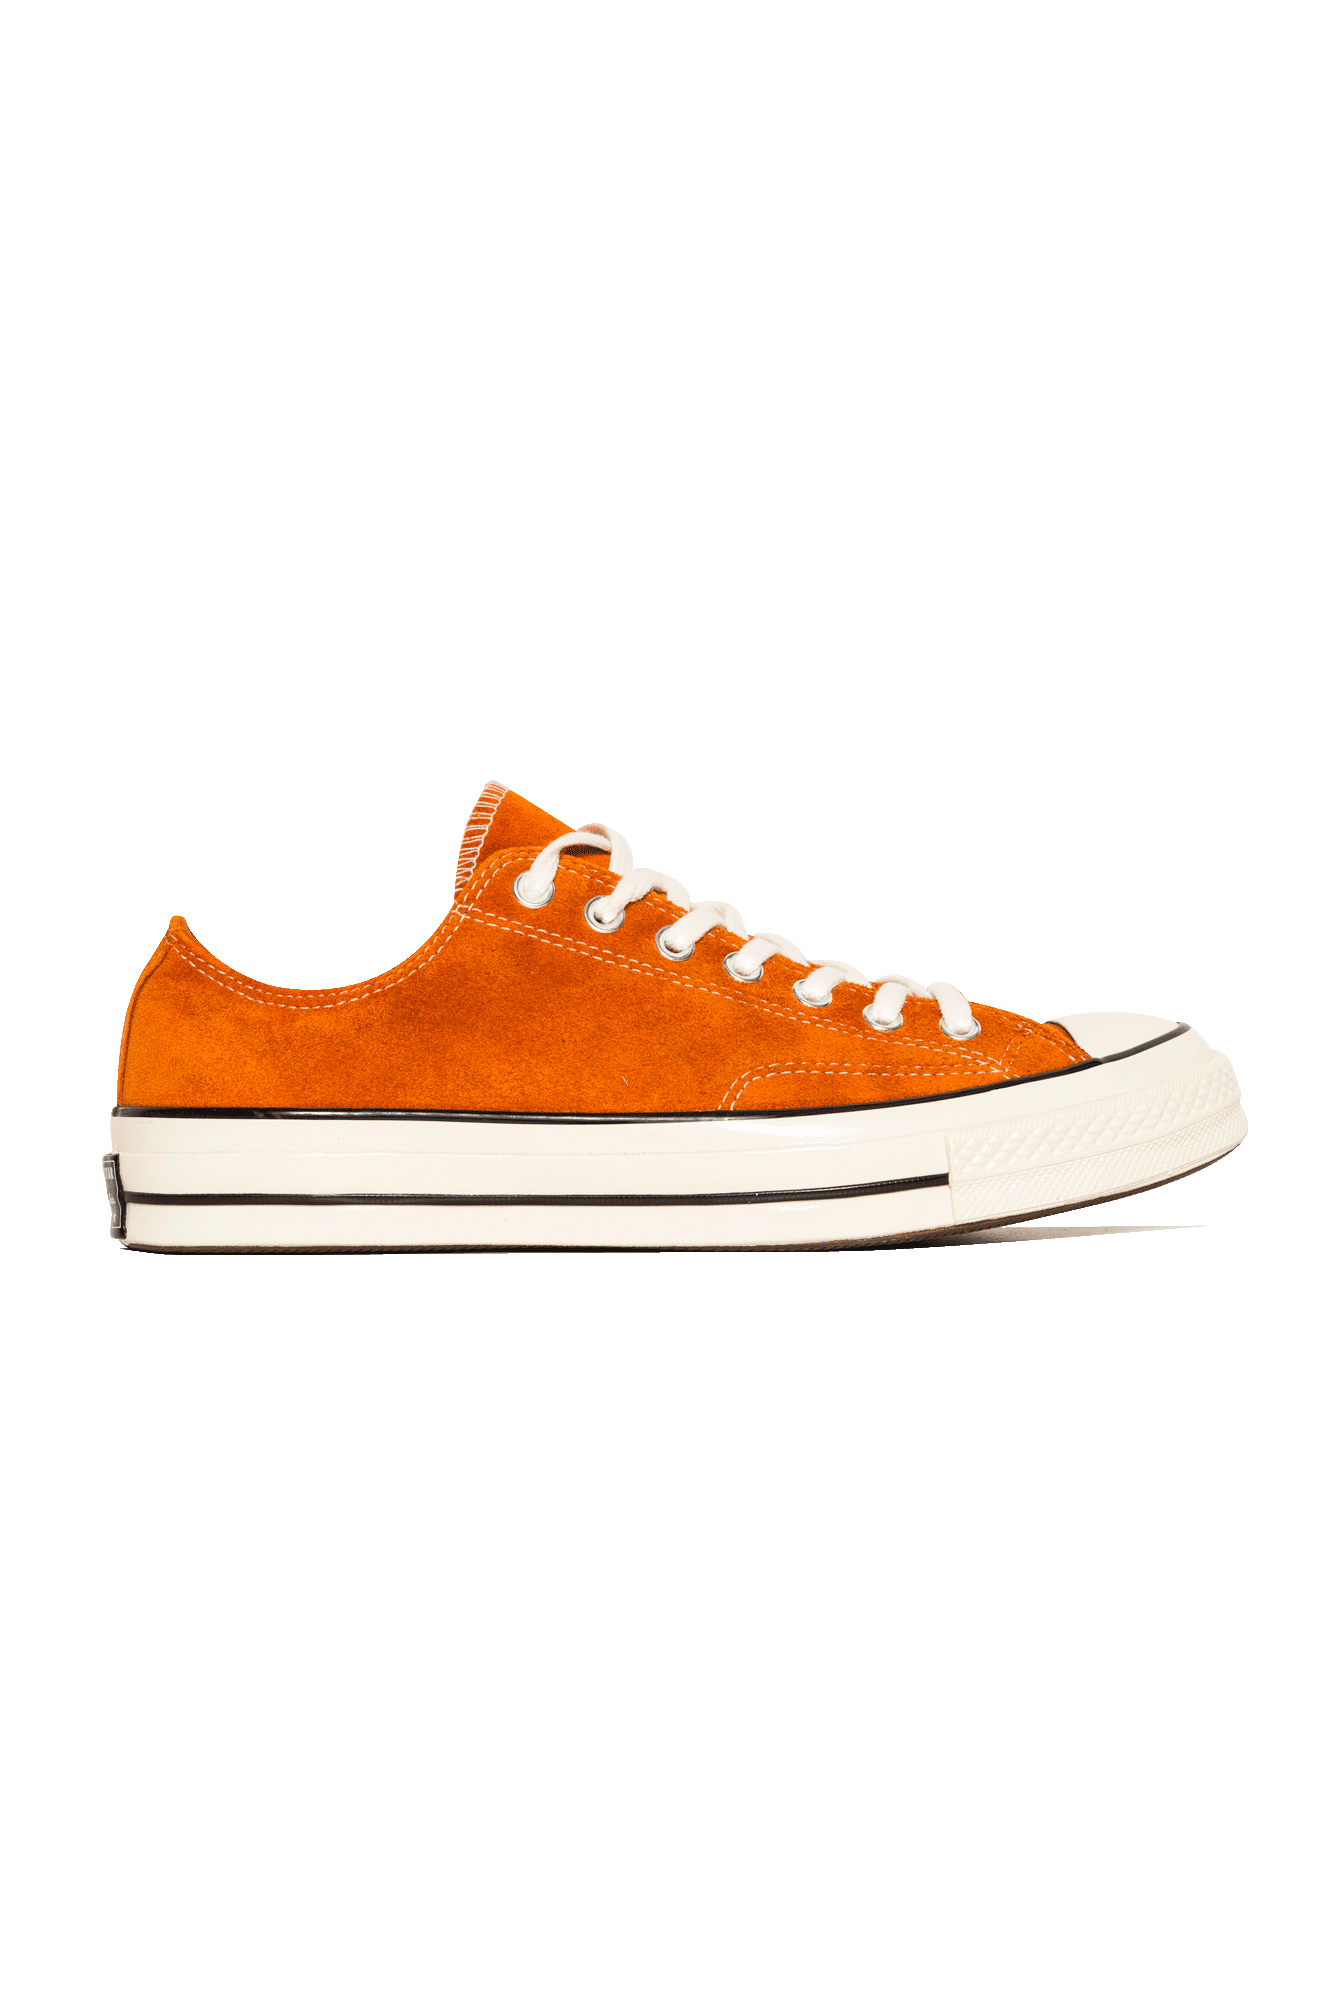 Converse Chuck Taylor All Star Wool Ox Womens Trainers in